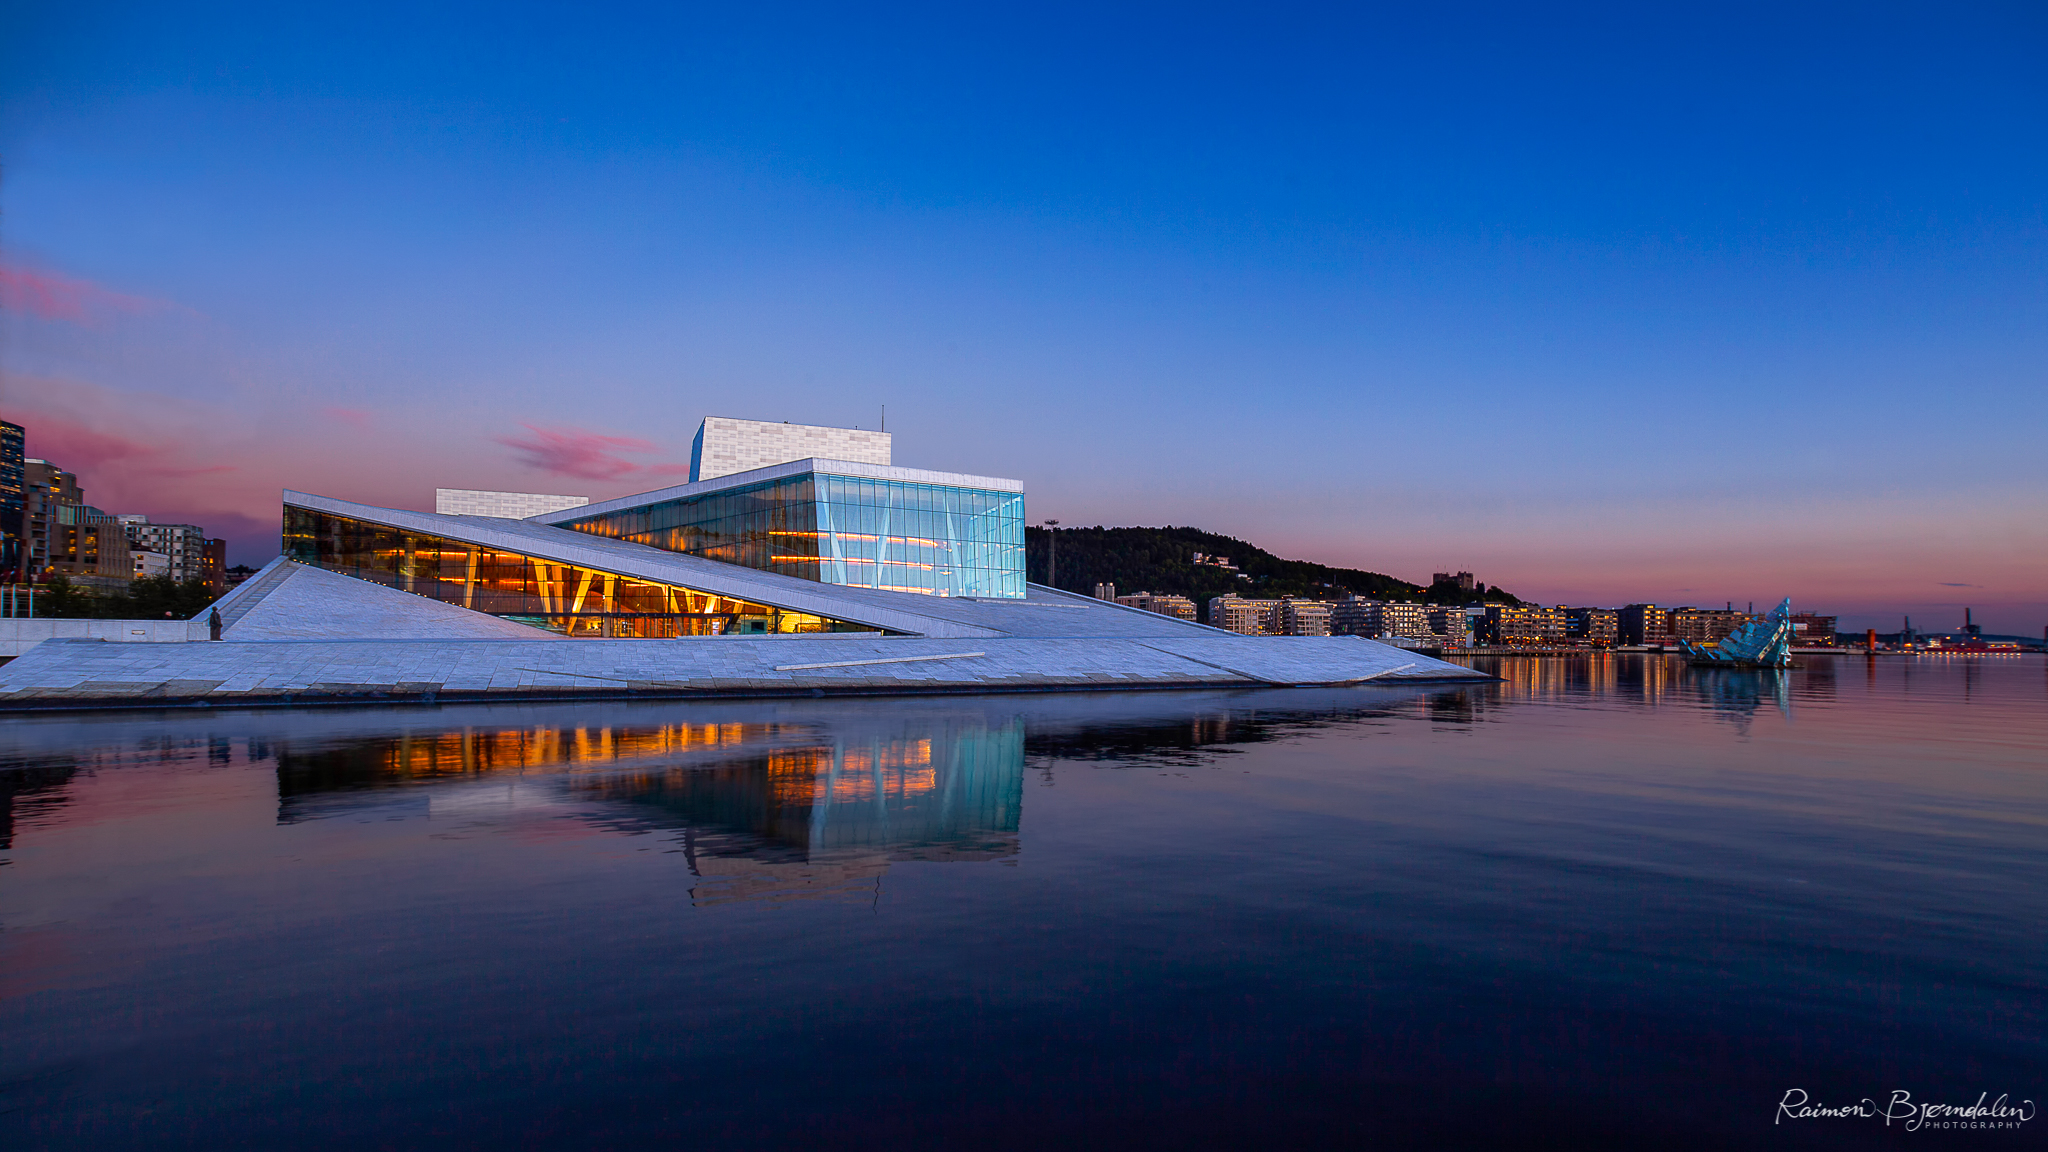 The Opera House in Oslo, Norway.